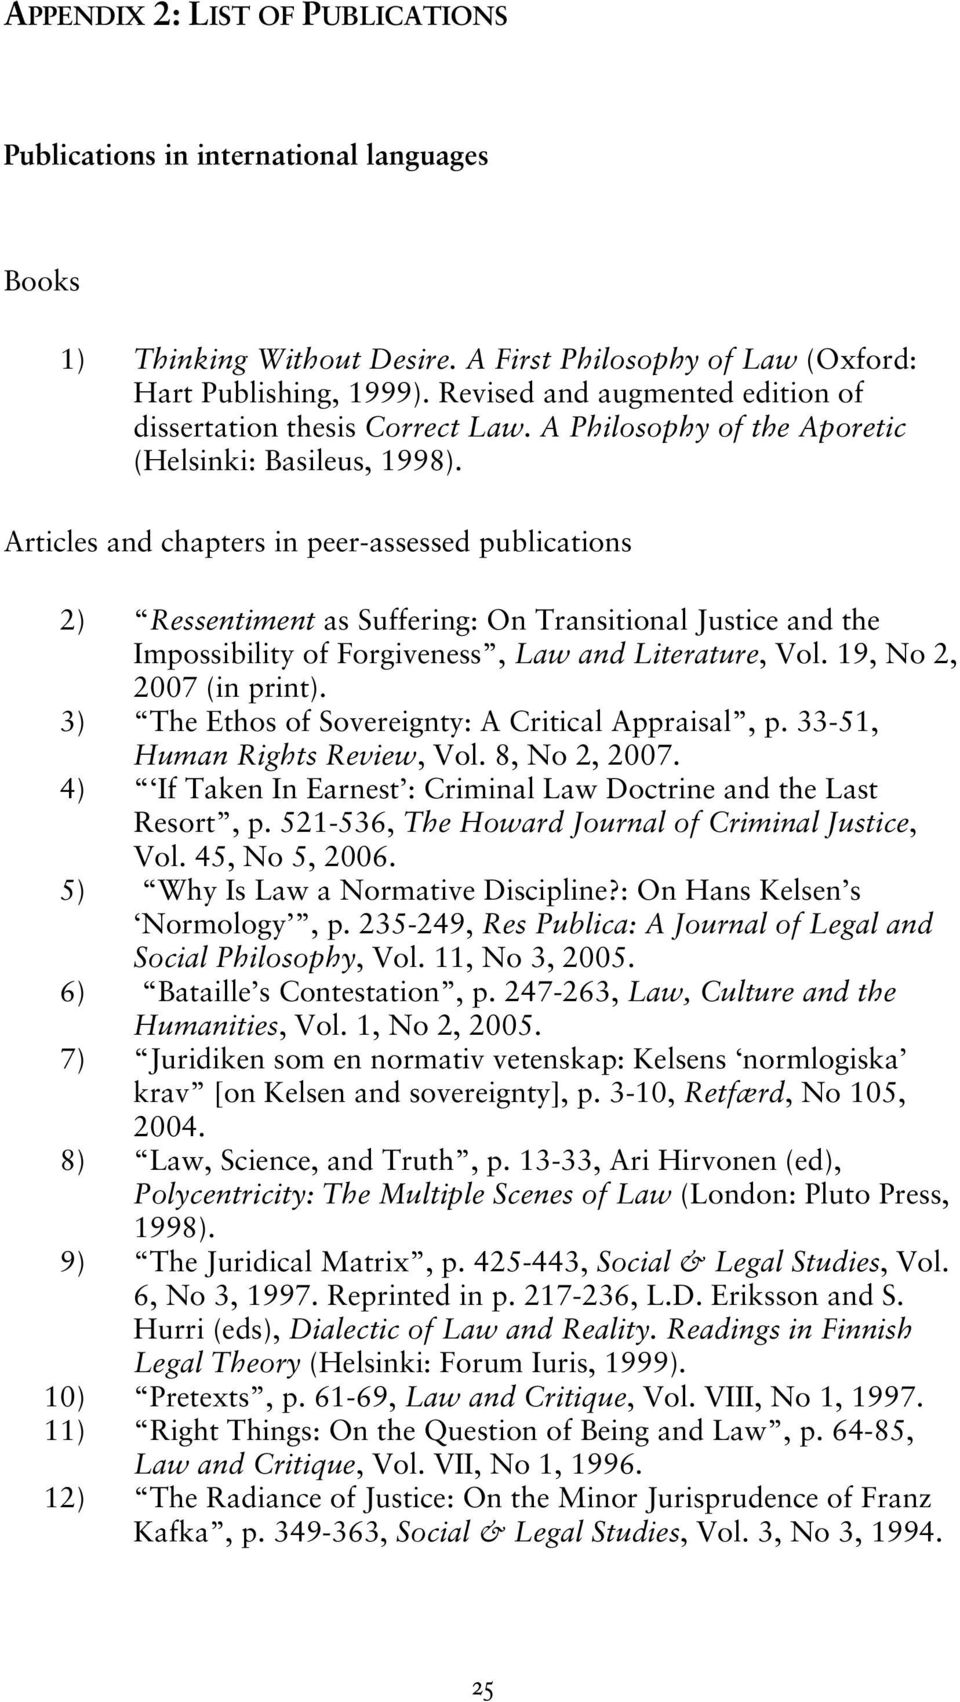 Articles and chapters in peer-assessed publications 2) Ressentiment as Suffering: On Transitional Justice and the Impossibility of Forgiveness, Law and Literature, Vol. 19, No 2, 2007 (in print).